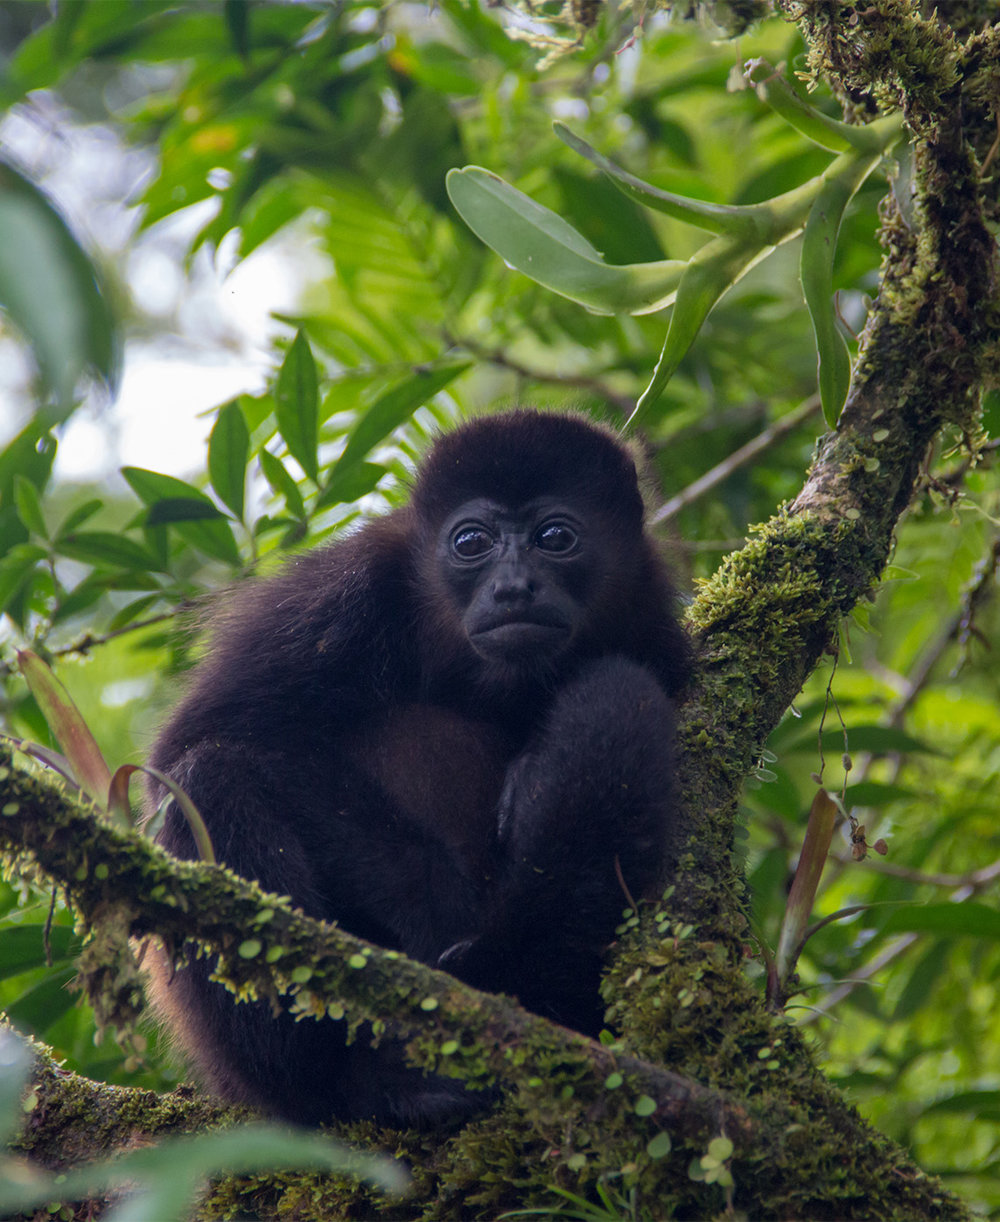 - The Endangered Yucatan Black Howler monkey is classified as Critically Endangered by the IUCN Red List due to an estimated past and projected future population decline well exceeding 80% over three generations (45 years), primarily as a result of a high rate of habitat loss.